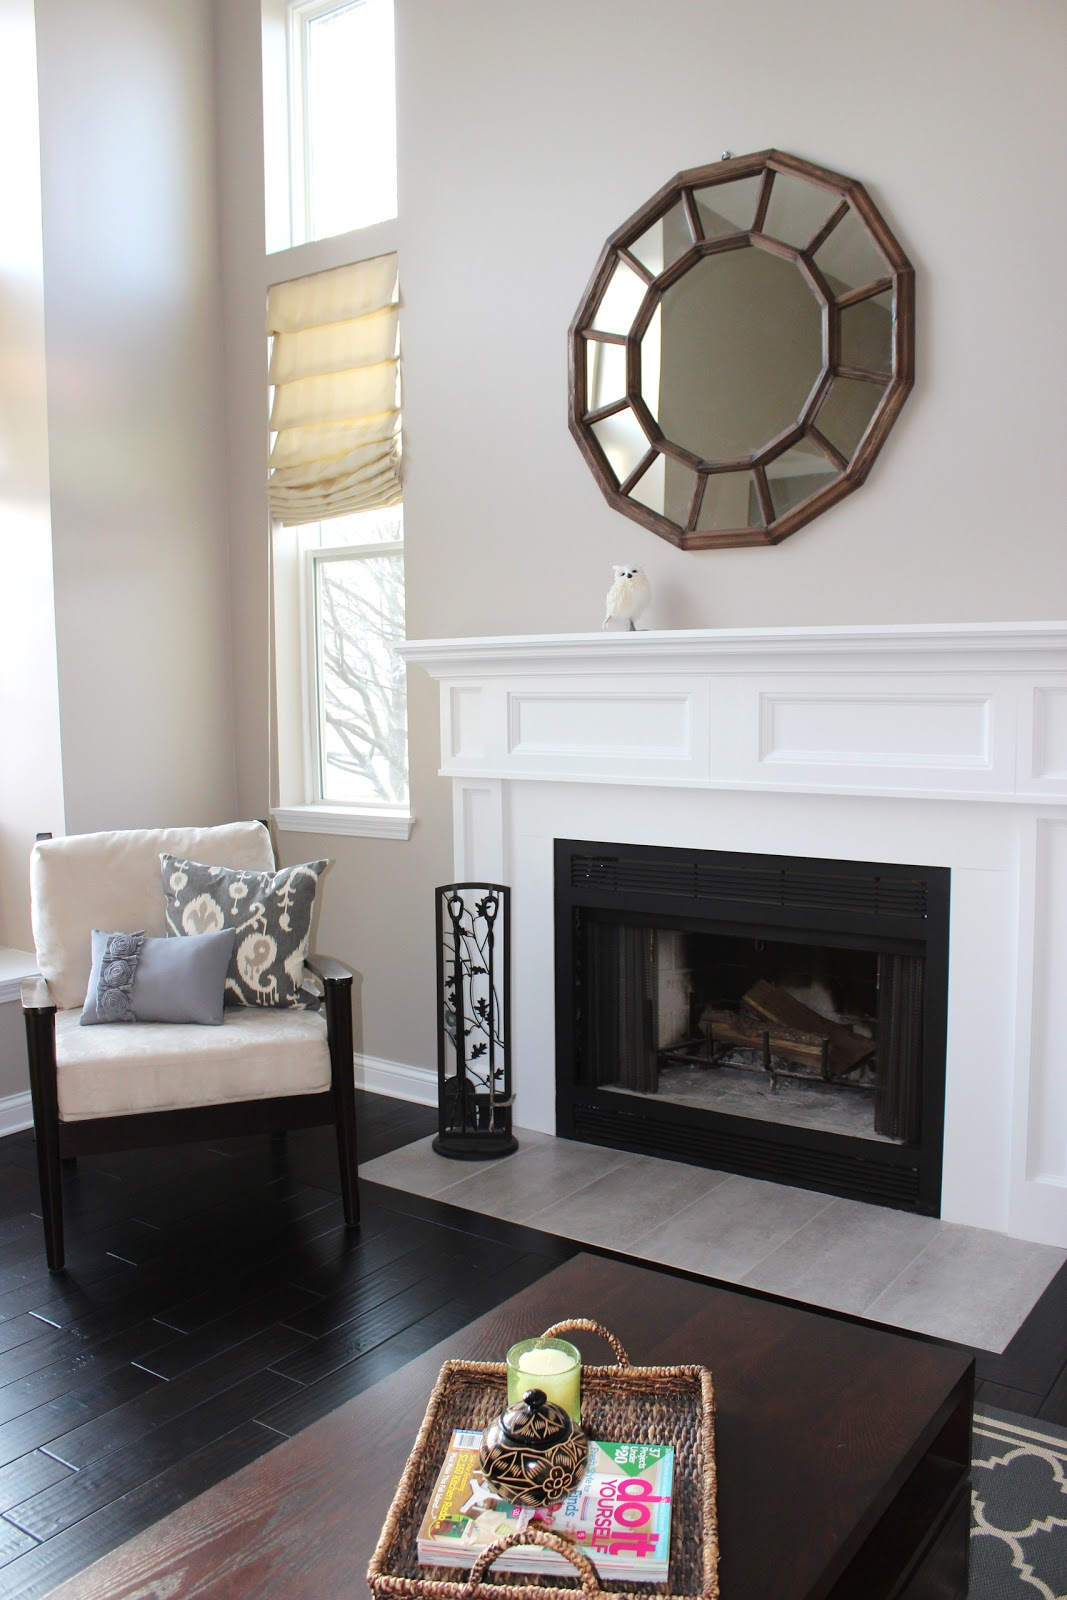 Mirror mirror on the wall 8 fireplace decorating ideas for Over fireplace decor